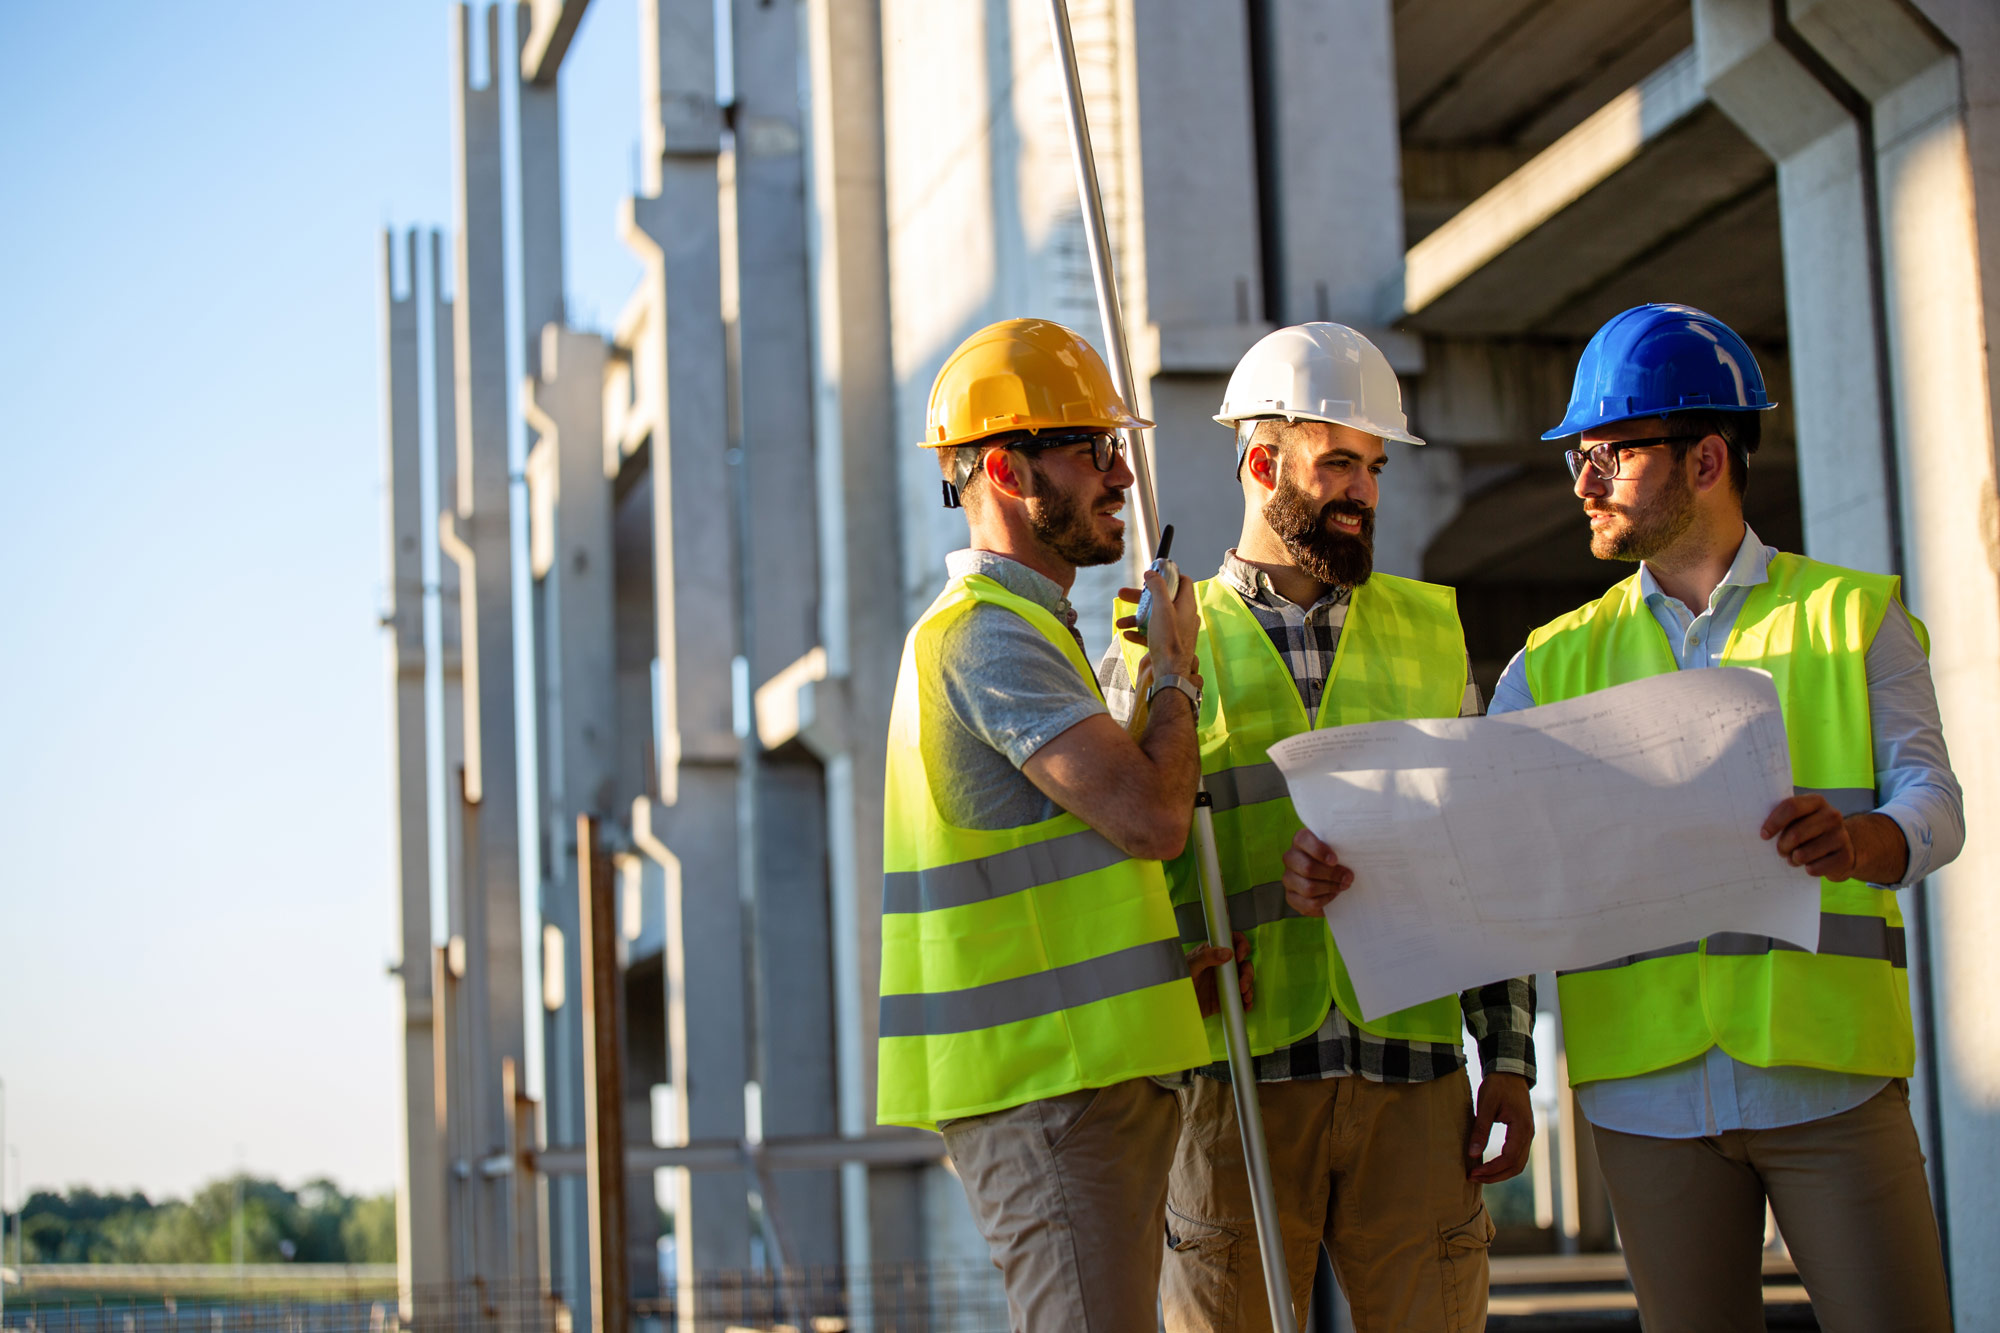 Group of construction worker talking with a radio in hand